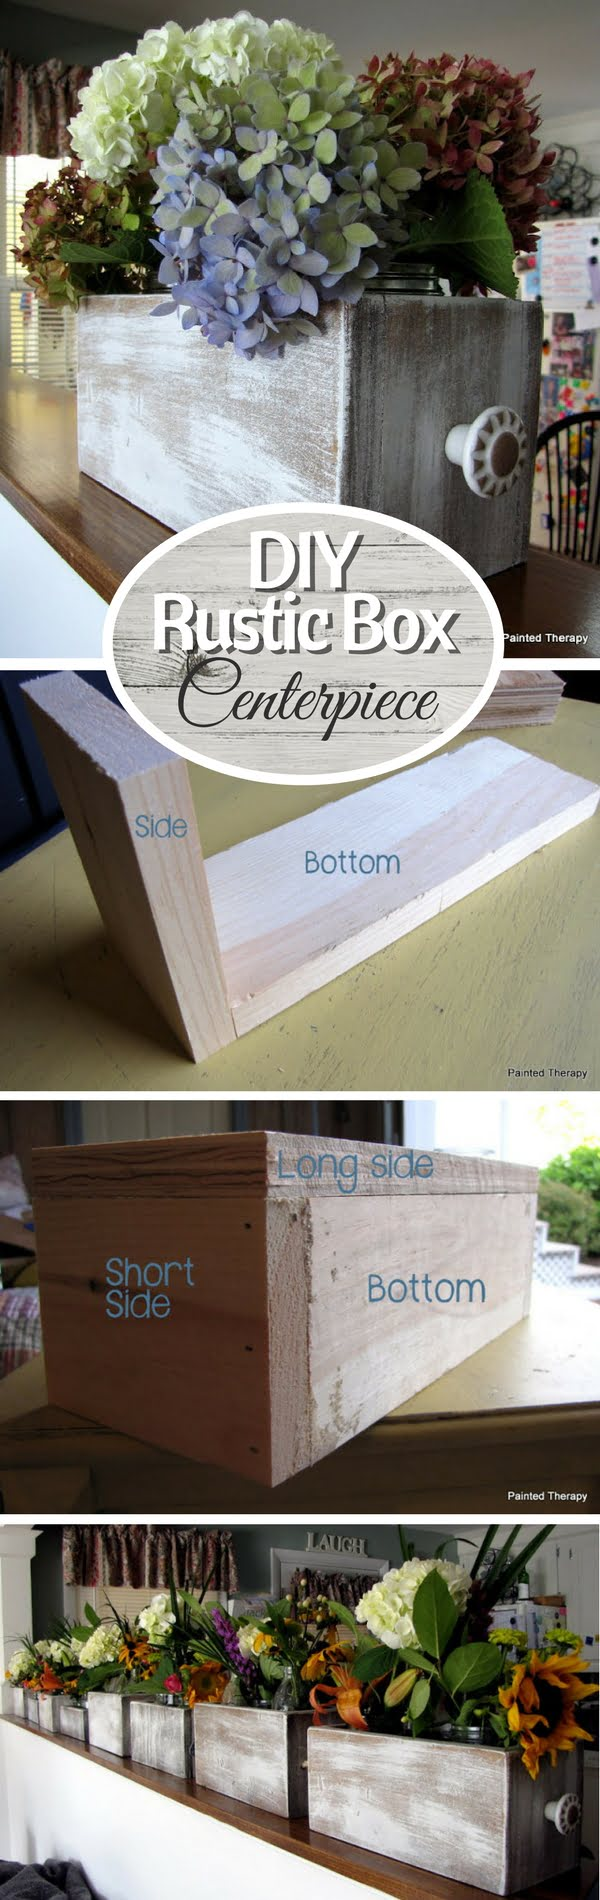 How to build a DIY rustic wooden box for centerpieces